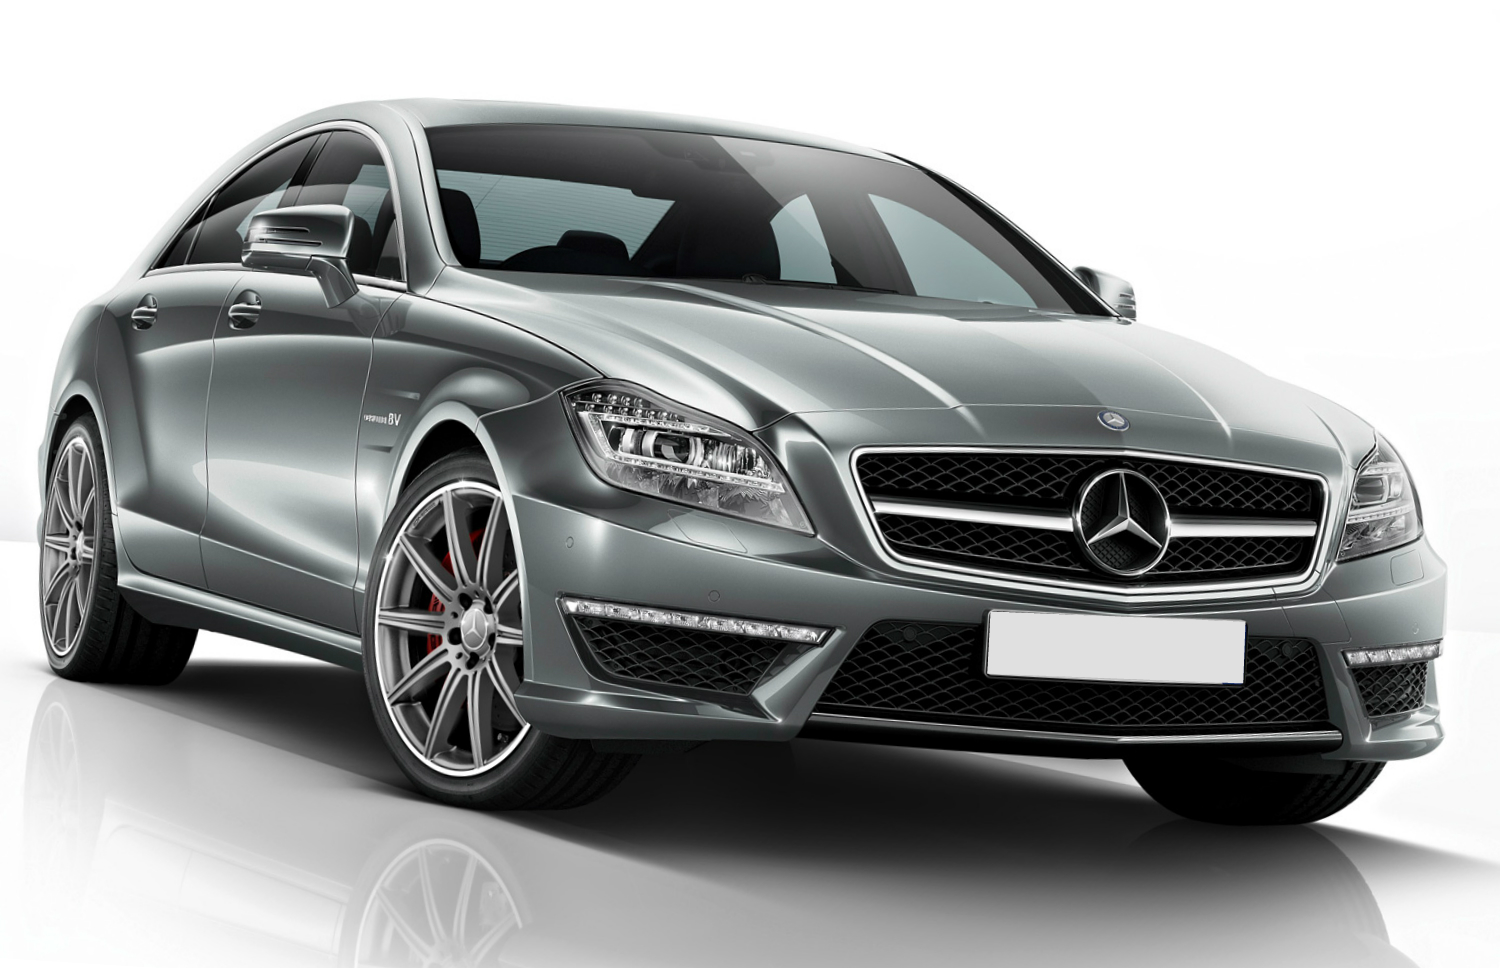 2017 mercedes cls 63 2017 2018 best cars reviews for 2017 amg cls 63 mercedes benz